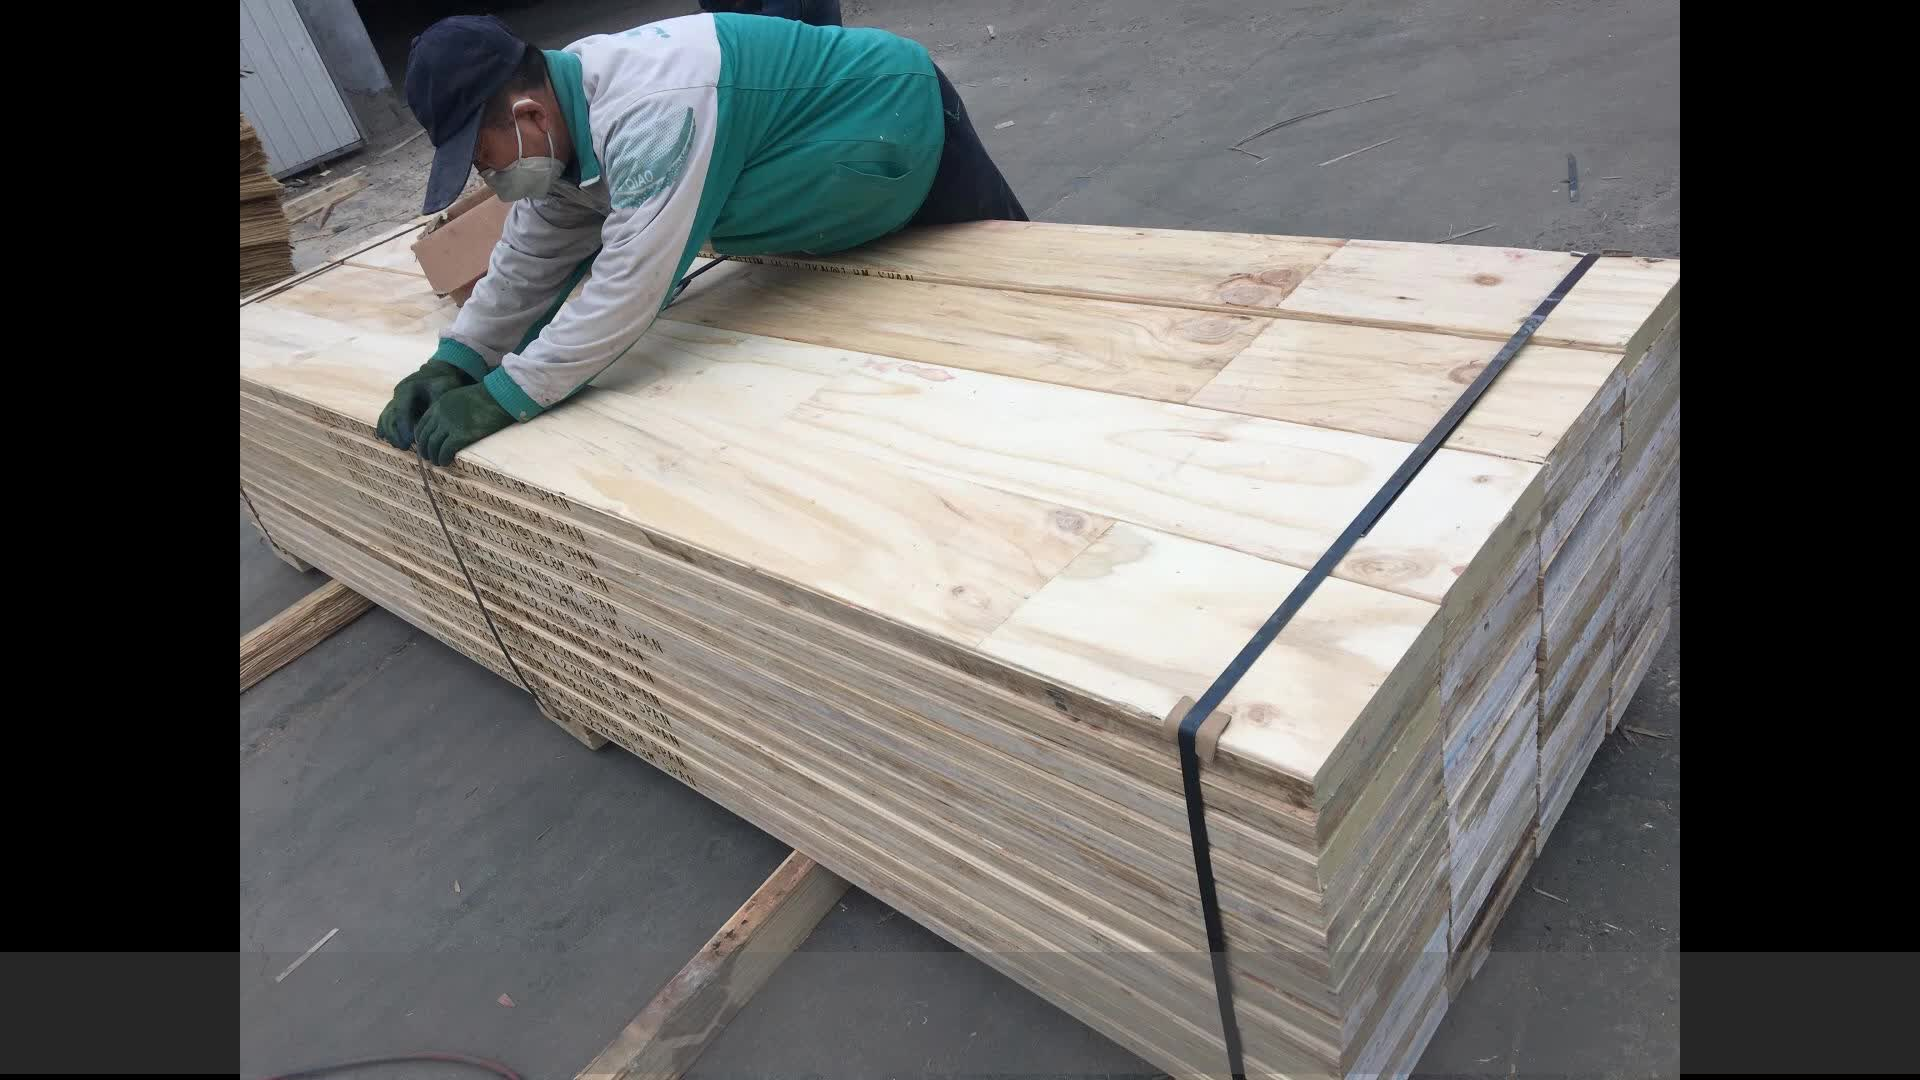 WADA China pine lvl scaffolding wooden construction plywood plank